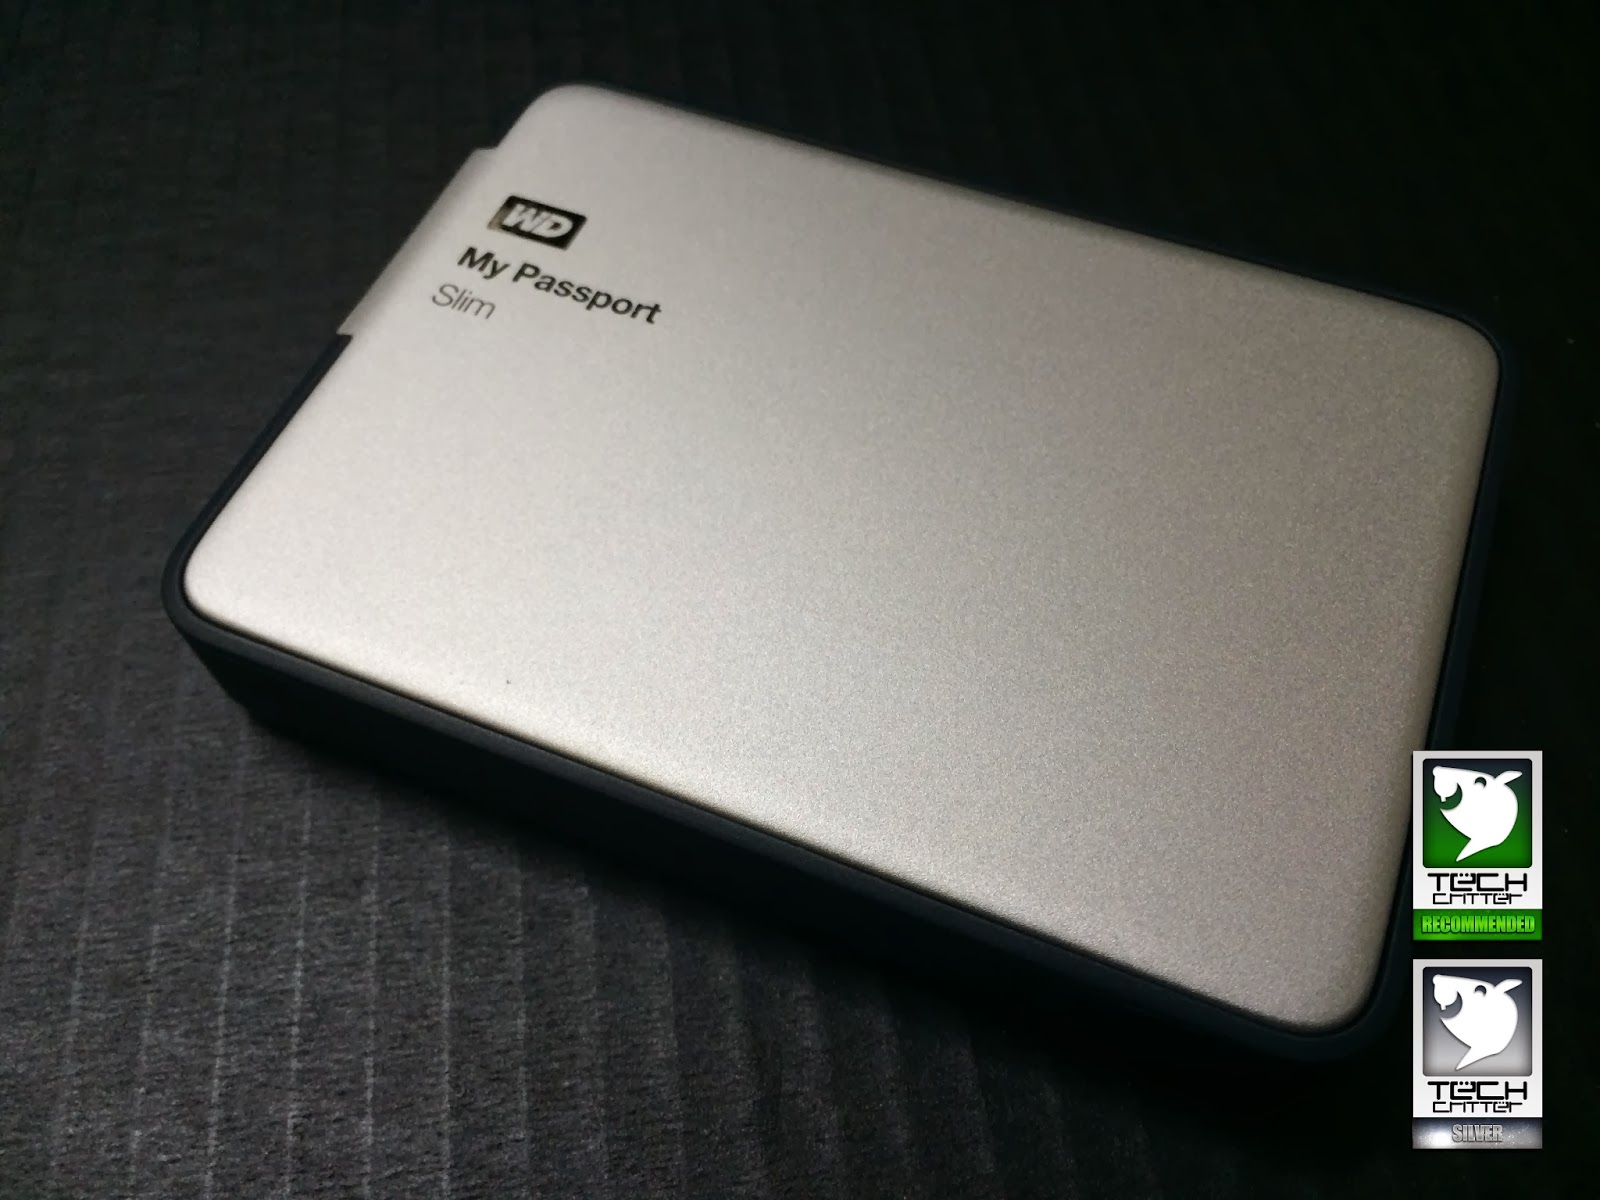 Unboxing & Review: Western Digital My Passport Slim